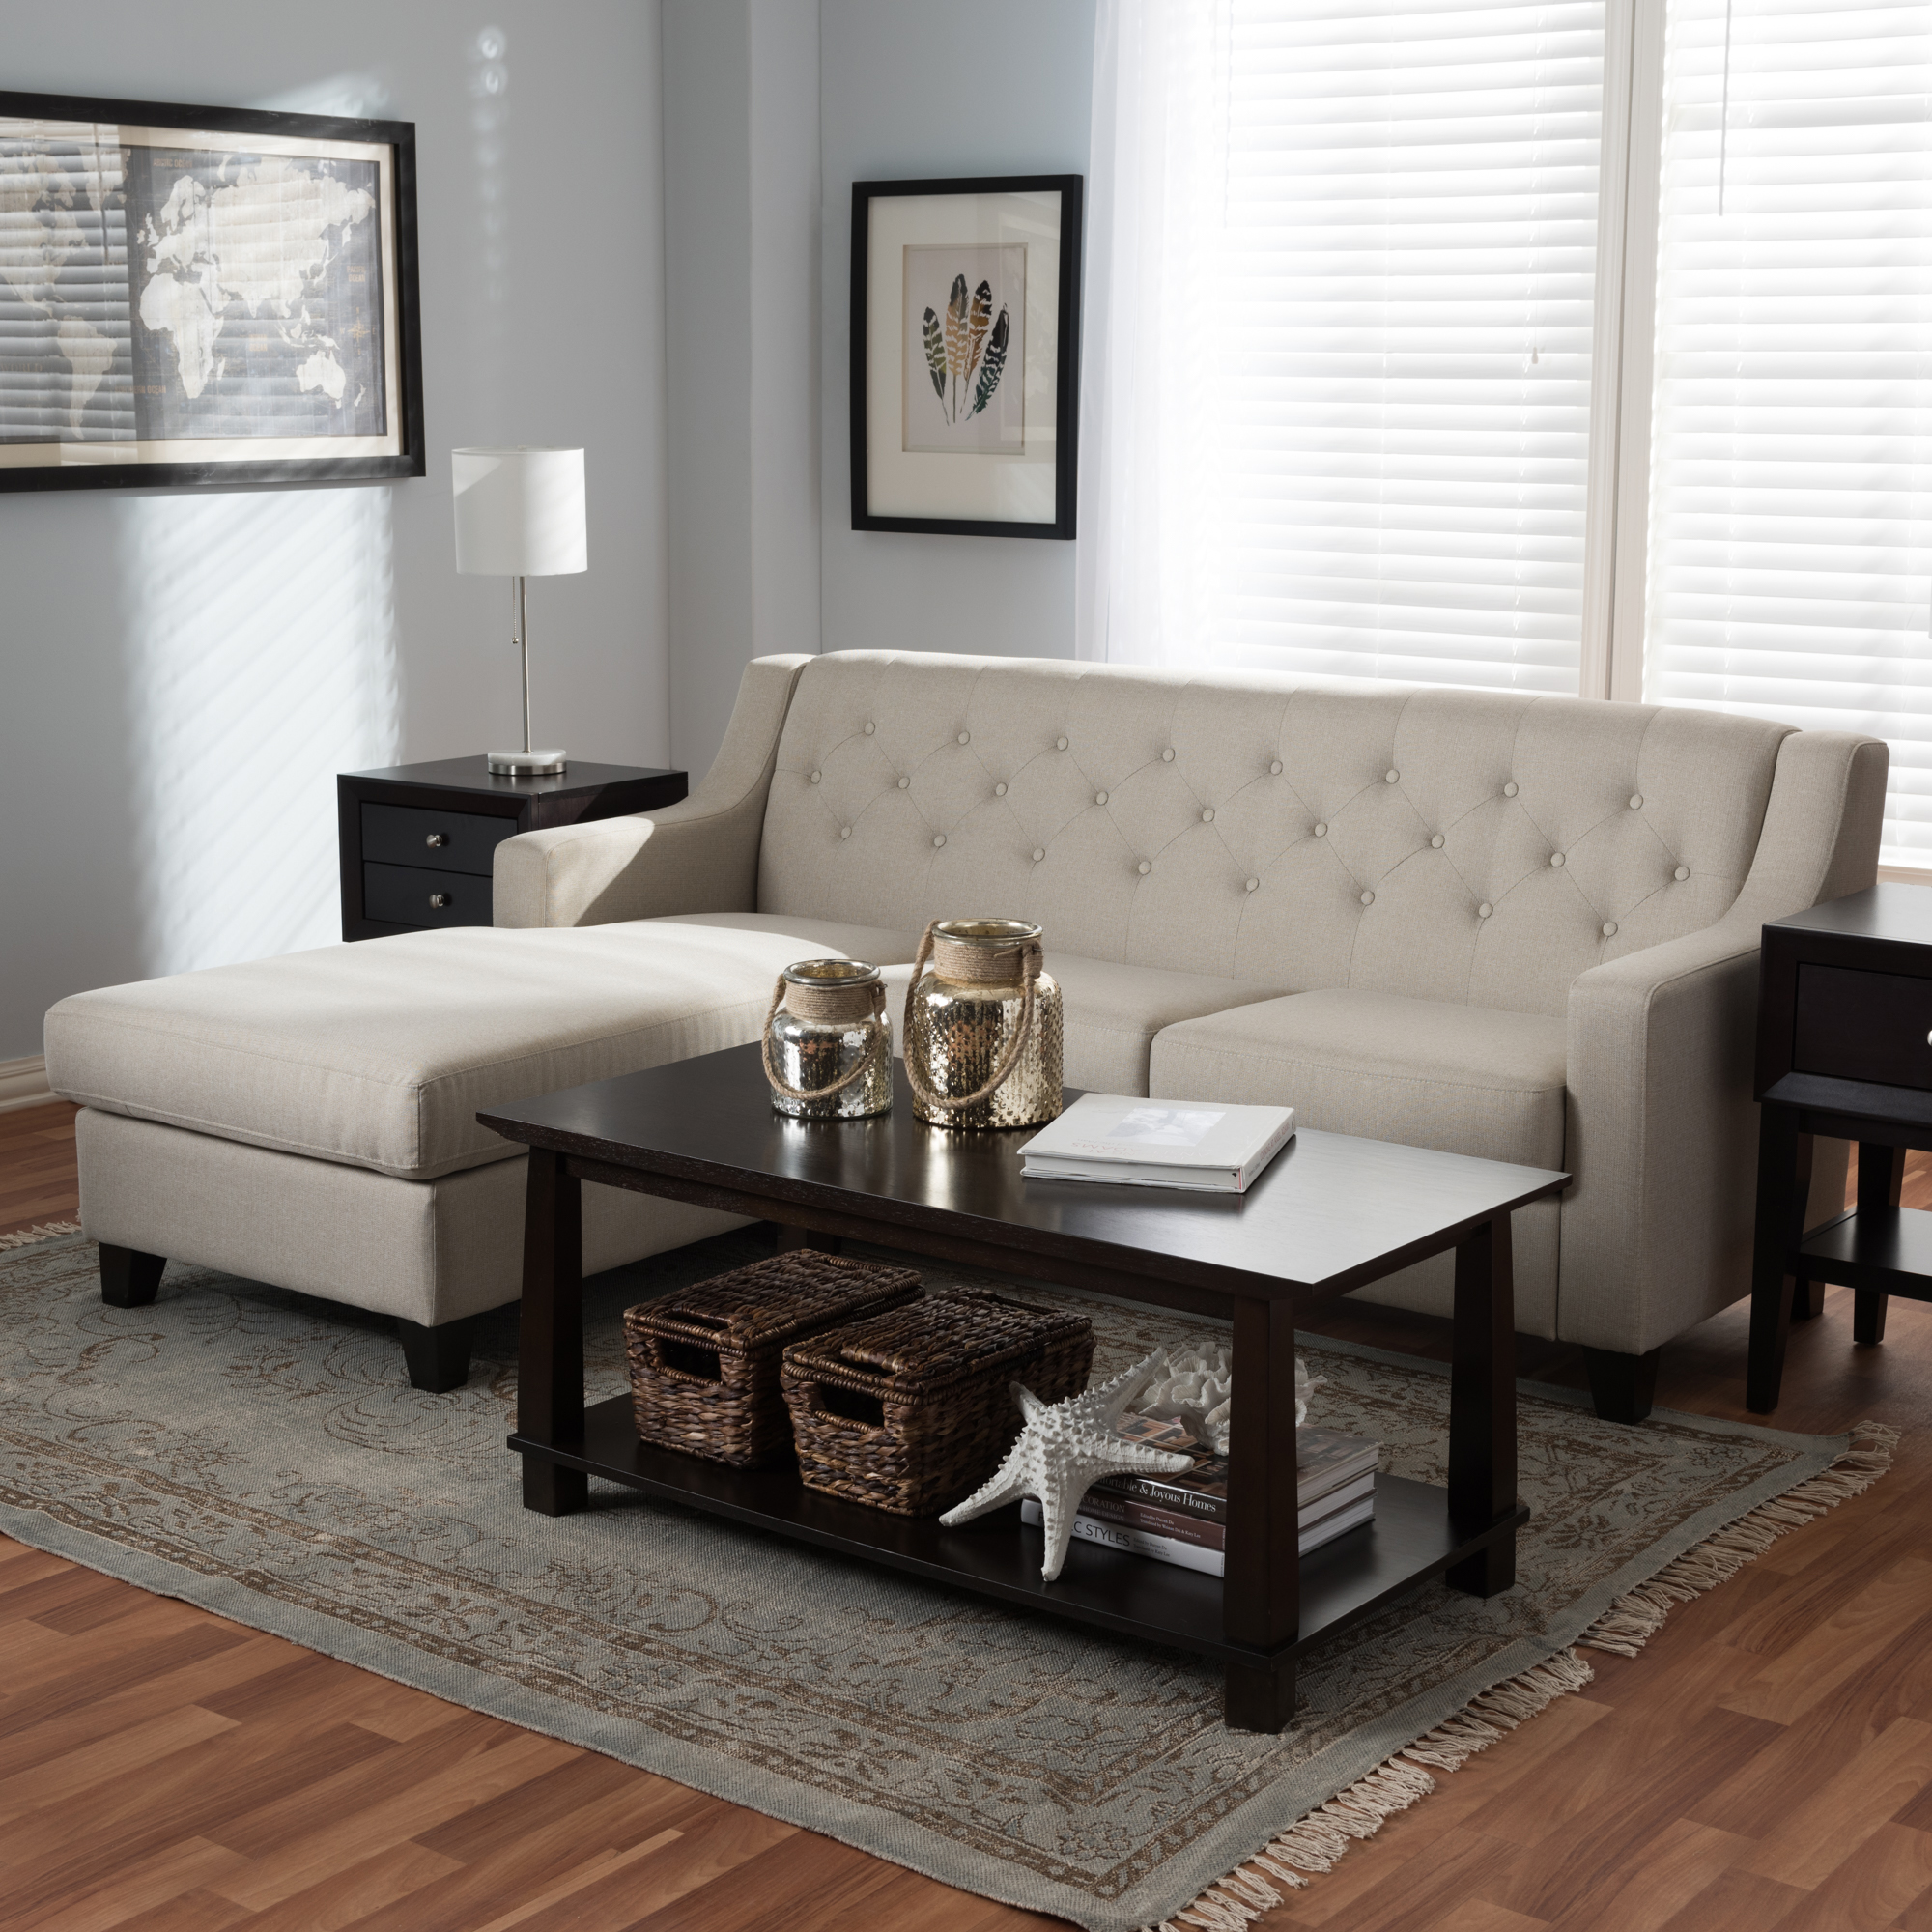 baxton studio arcadia light beige fabric upholstered 2piece sectional sofa